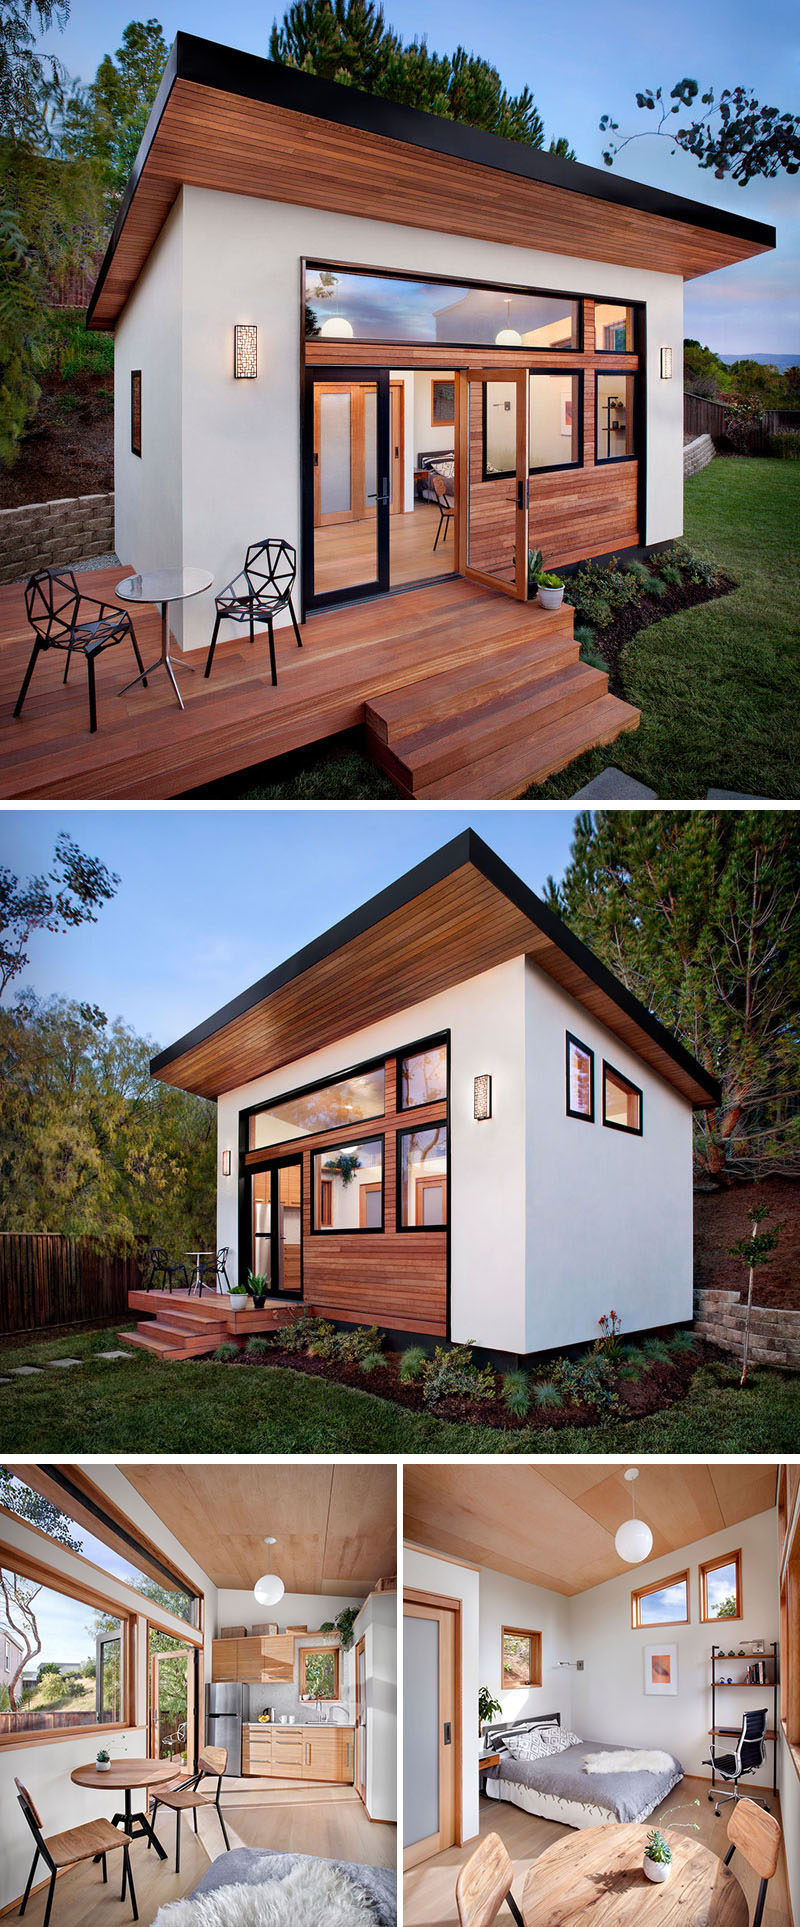 A small backyard guest house with a kitchen, bathroom, dining spot, sleeping area, and desk space.